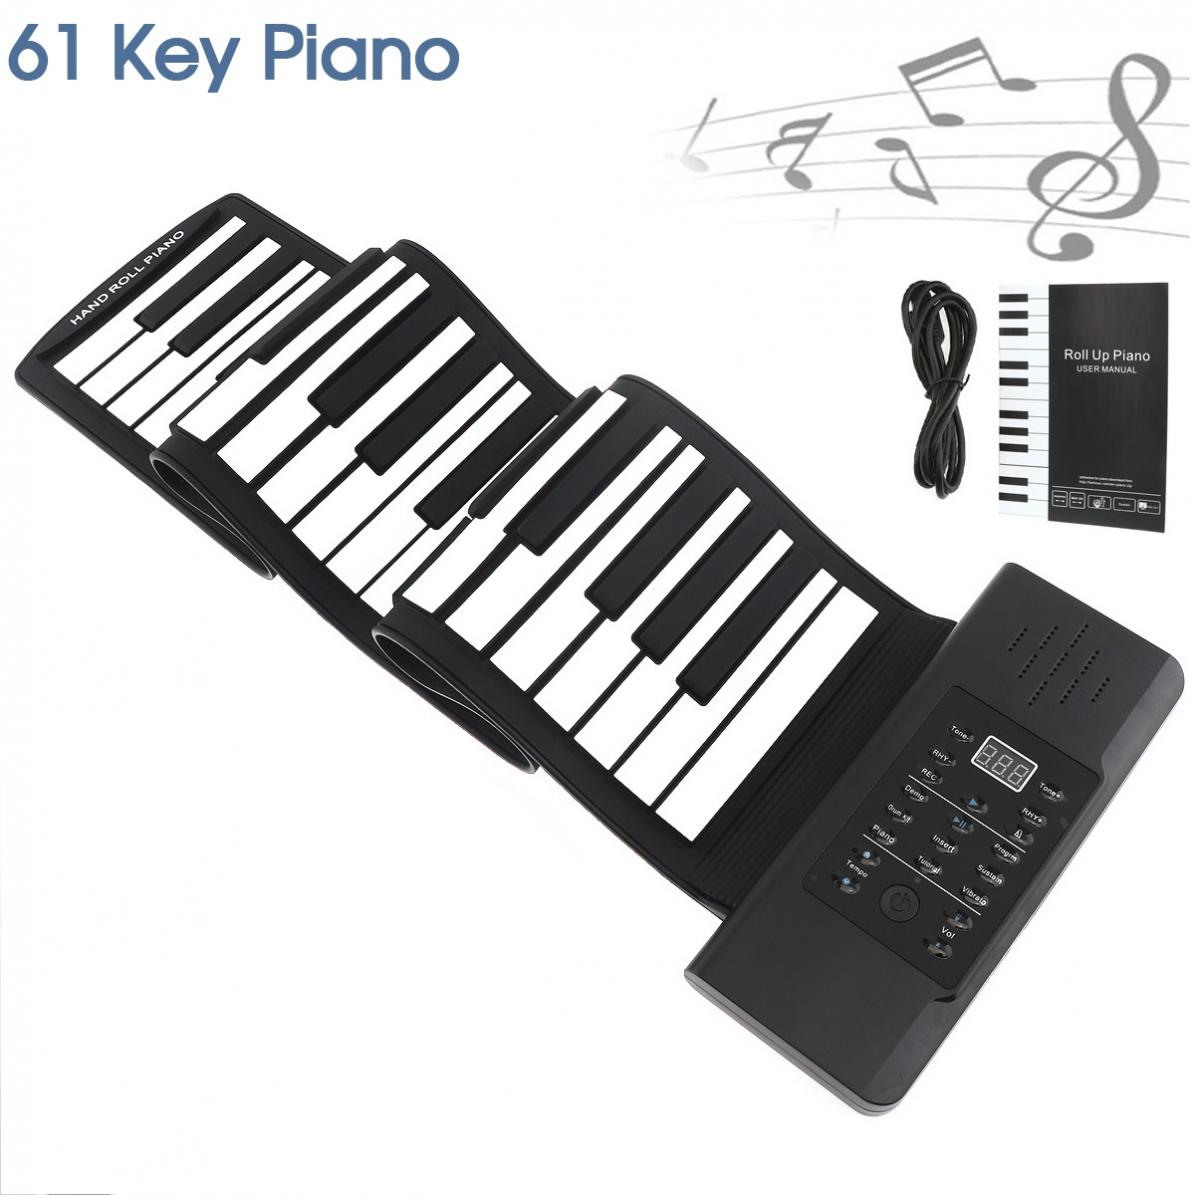 61 Keys USB MIDI Output Roll Up Piano Rechargeable Electronic Portable Silicone Flexible Keyboard Organ Built-in Speaker61 Keys USB MIDI Output Roll Up Piano Rechargeable Electronic Portable Silicone Flexible Keyboard Organ Built-in Speaker